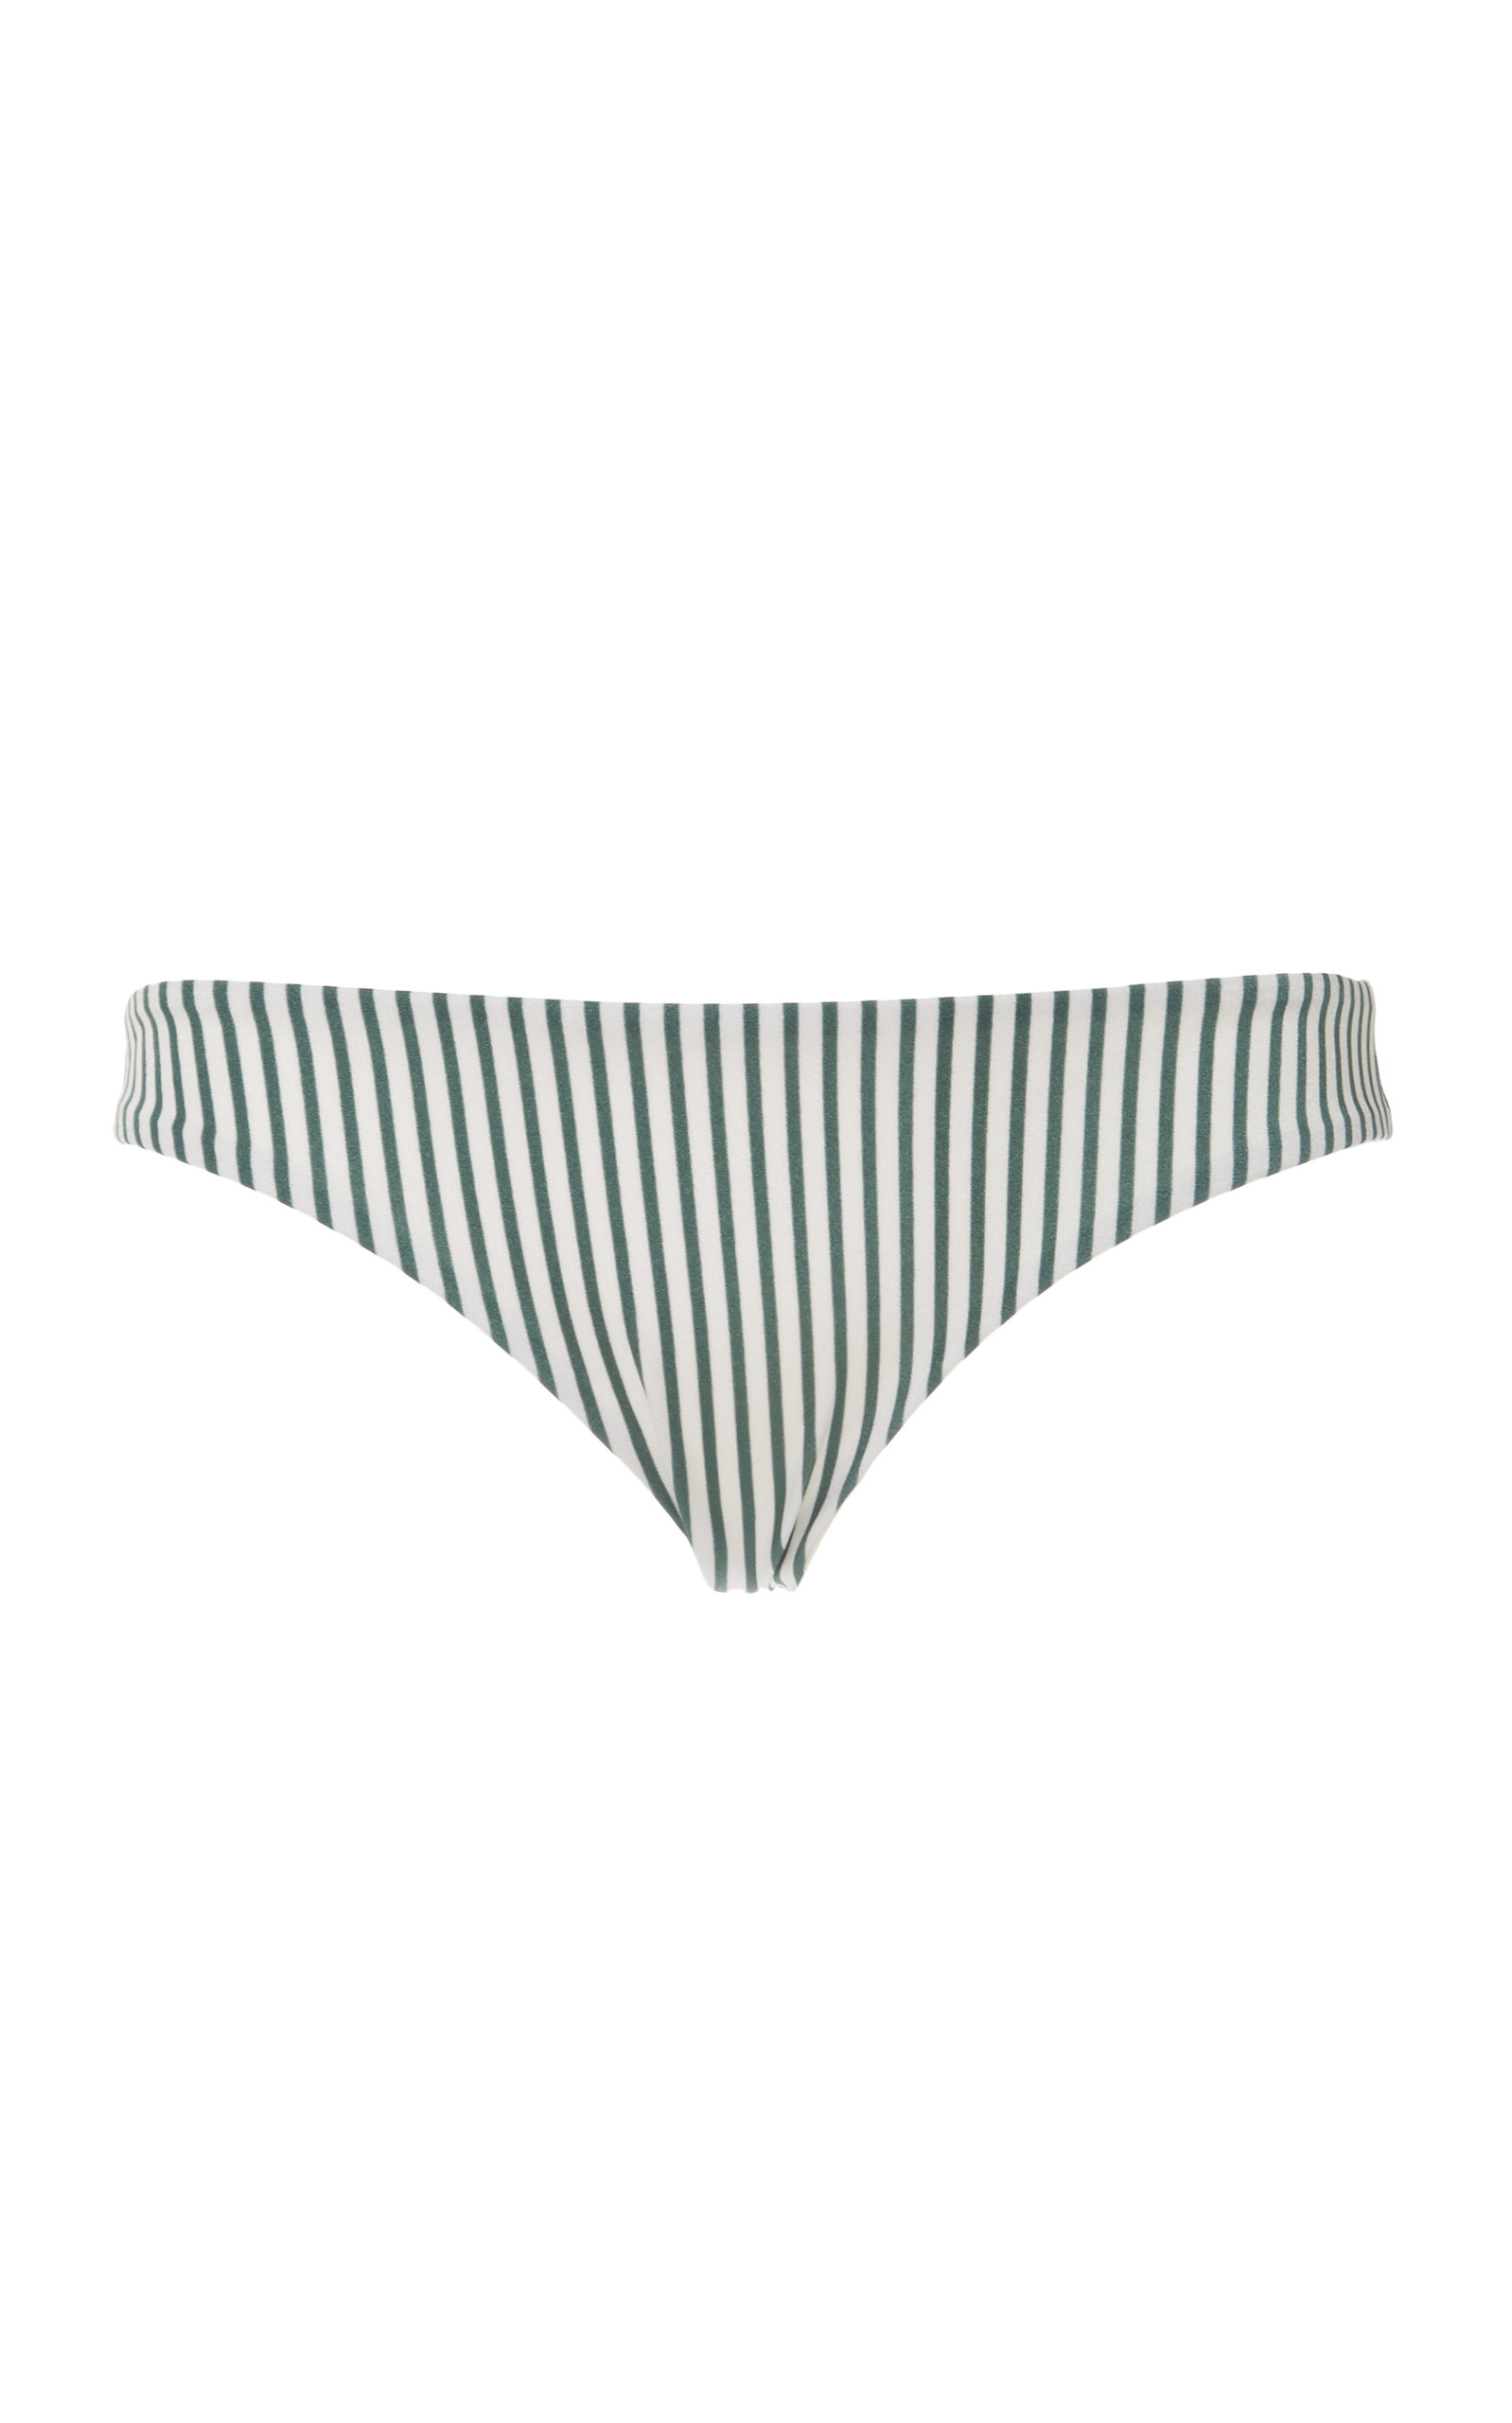 TORI PRAVER Mimi Ruched Cheeky Bottom in Green